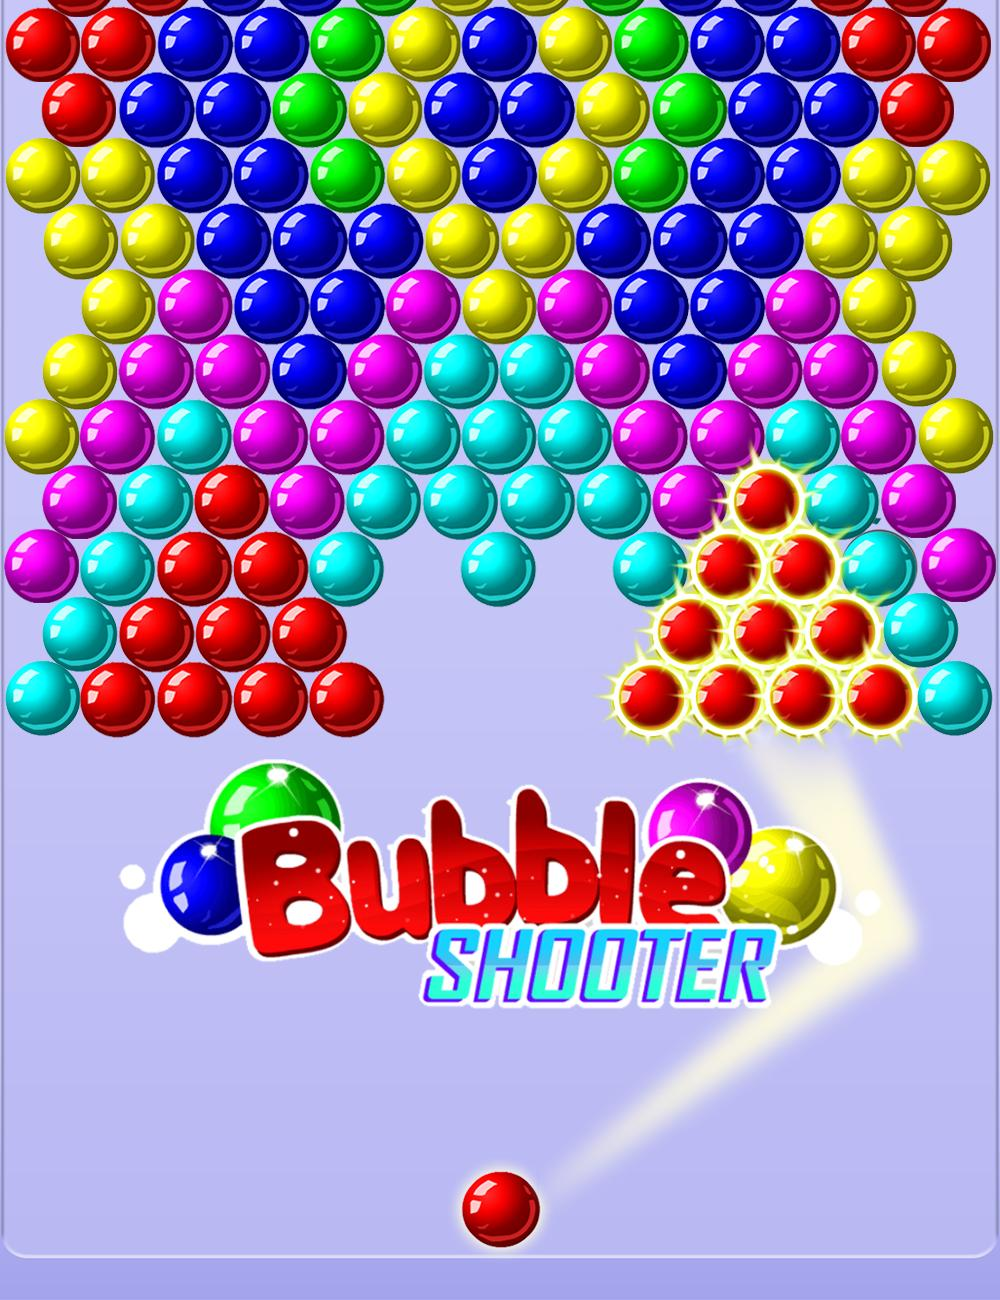 Bubbleshoter